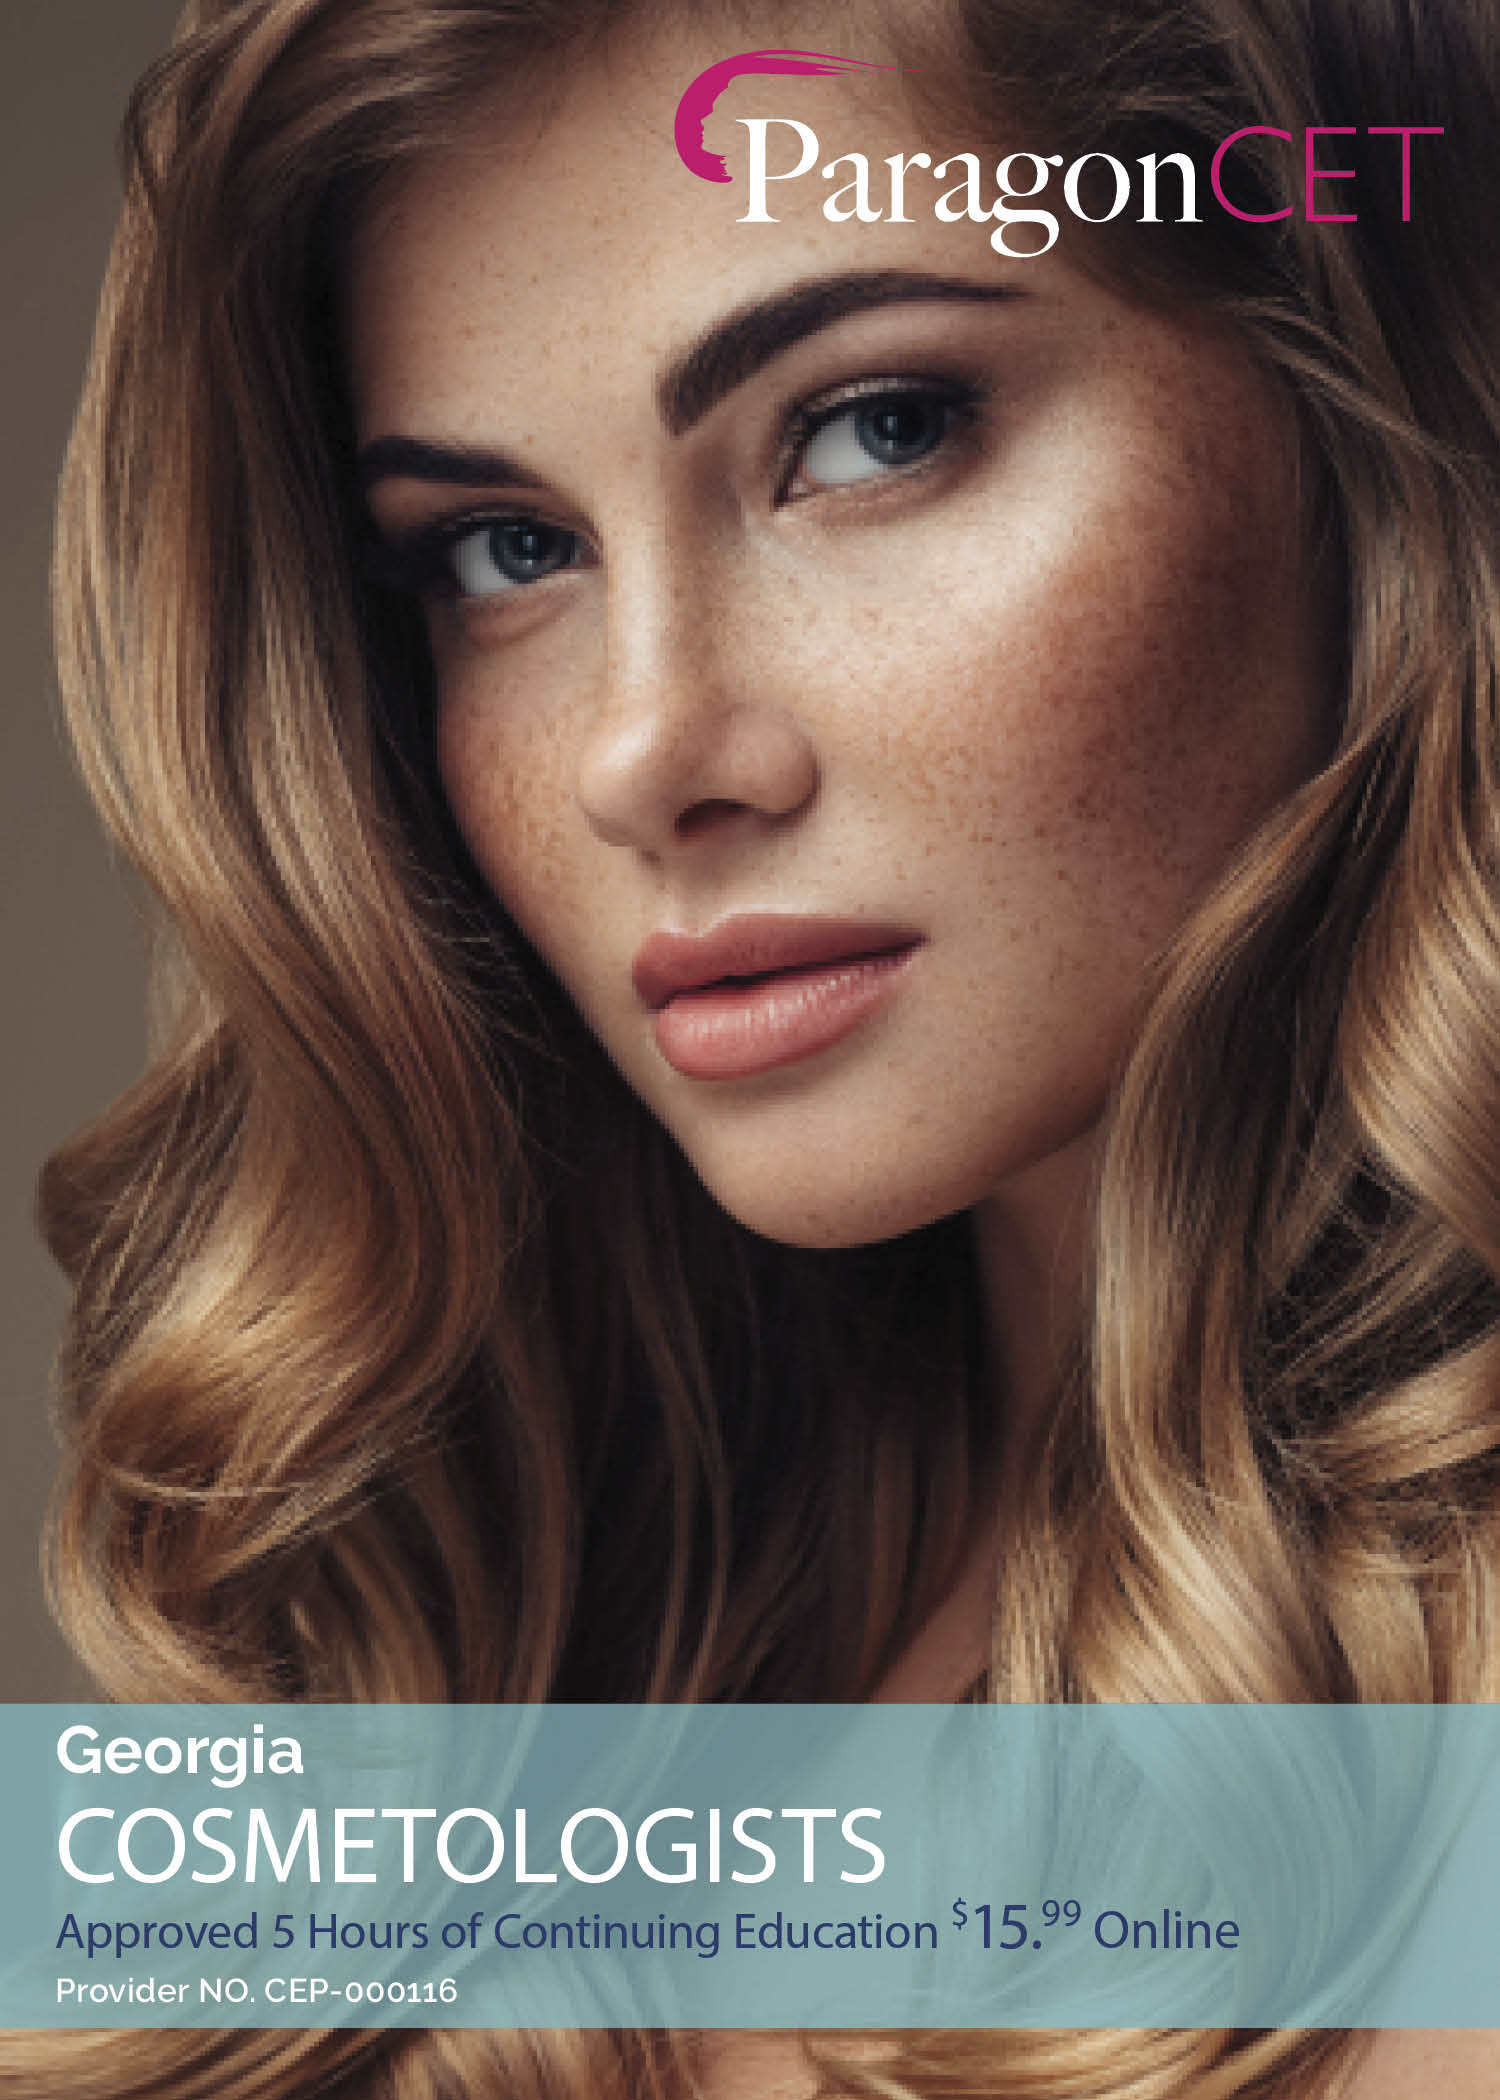 Georgia Cosmetology 2020 Special Offer